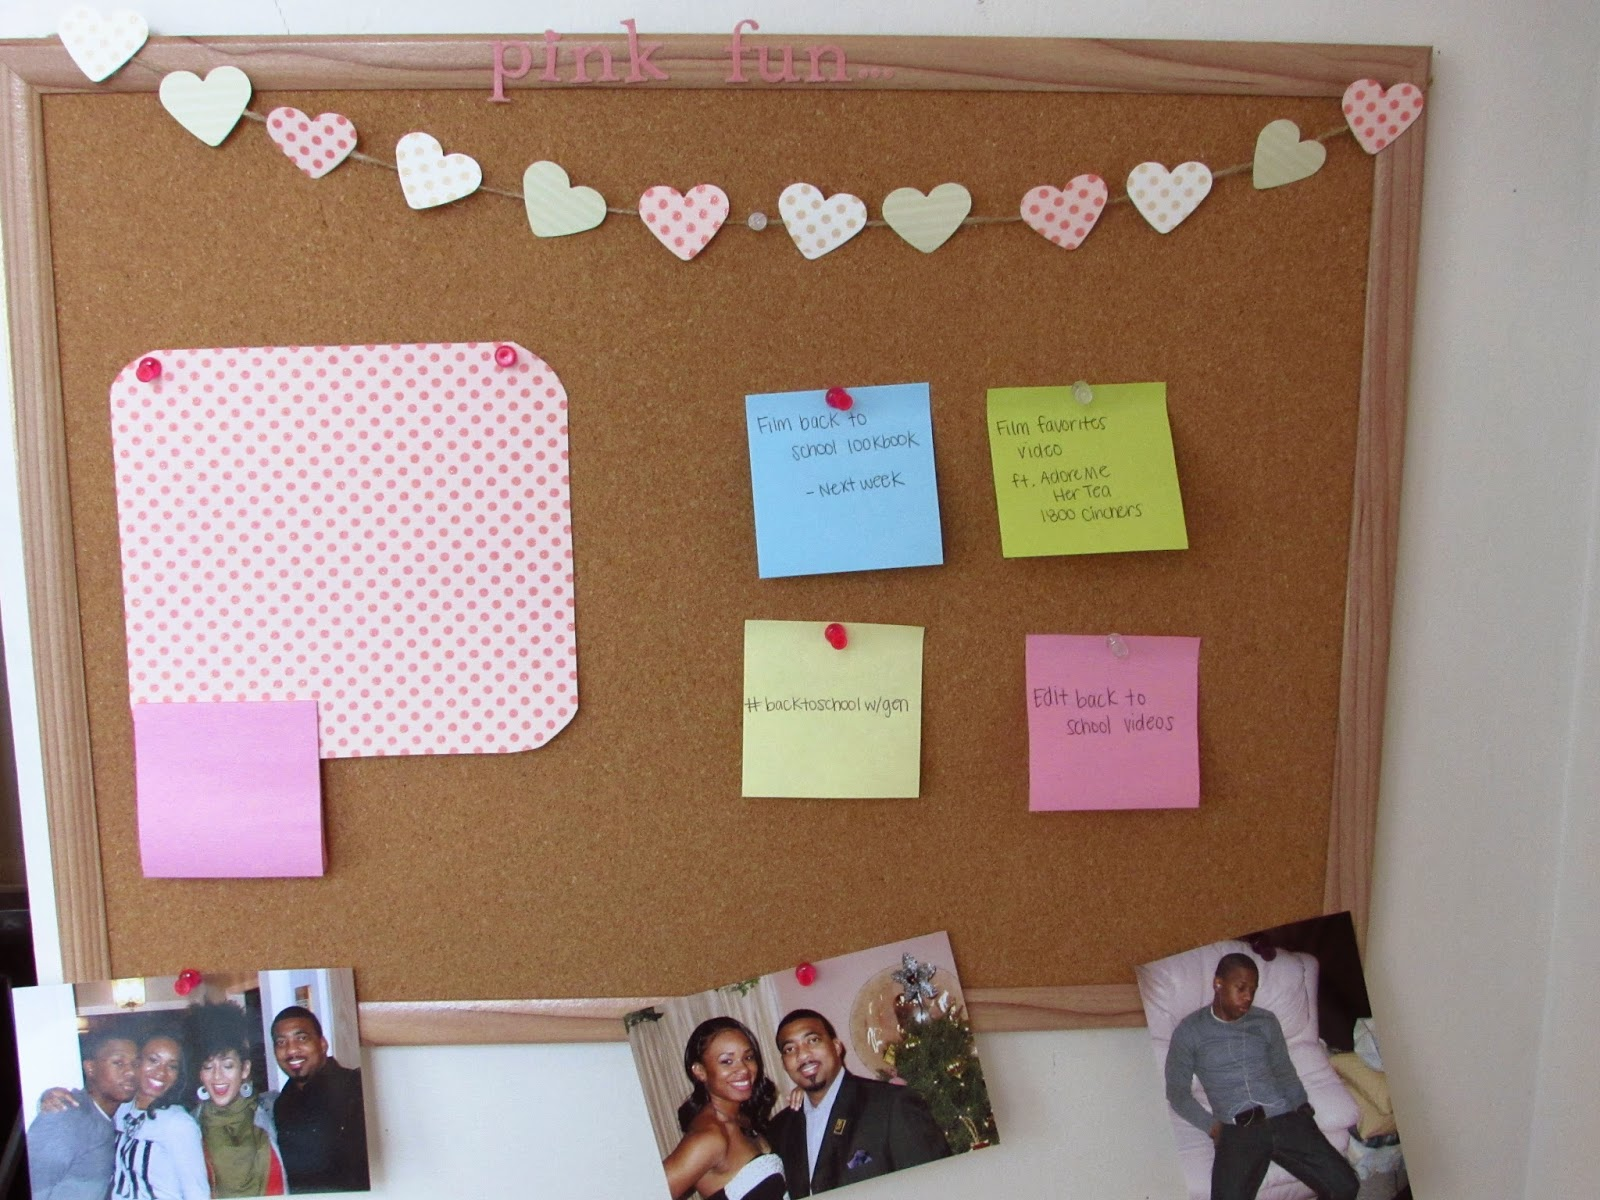 Ideas For Cork Board Decorating Authorvisit3 08m 1 Jpg By Studio